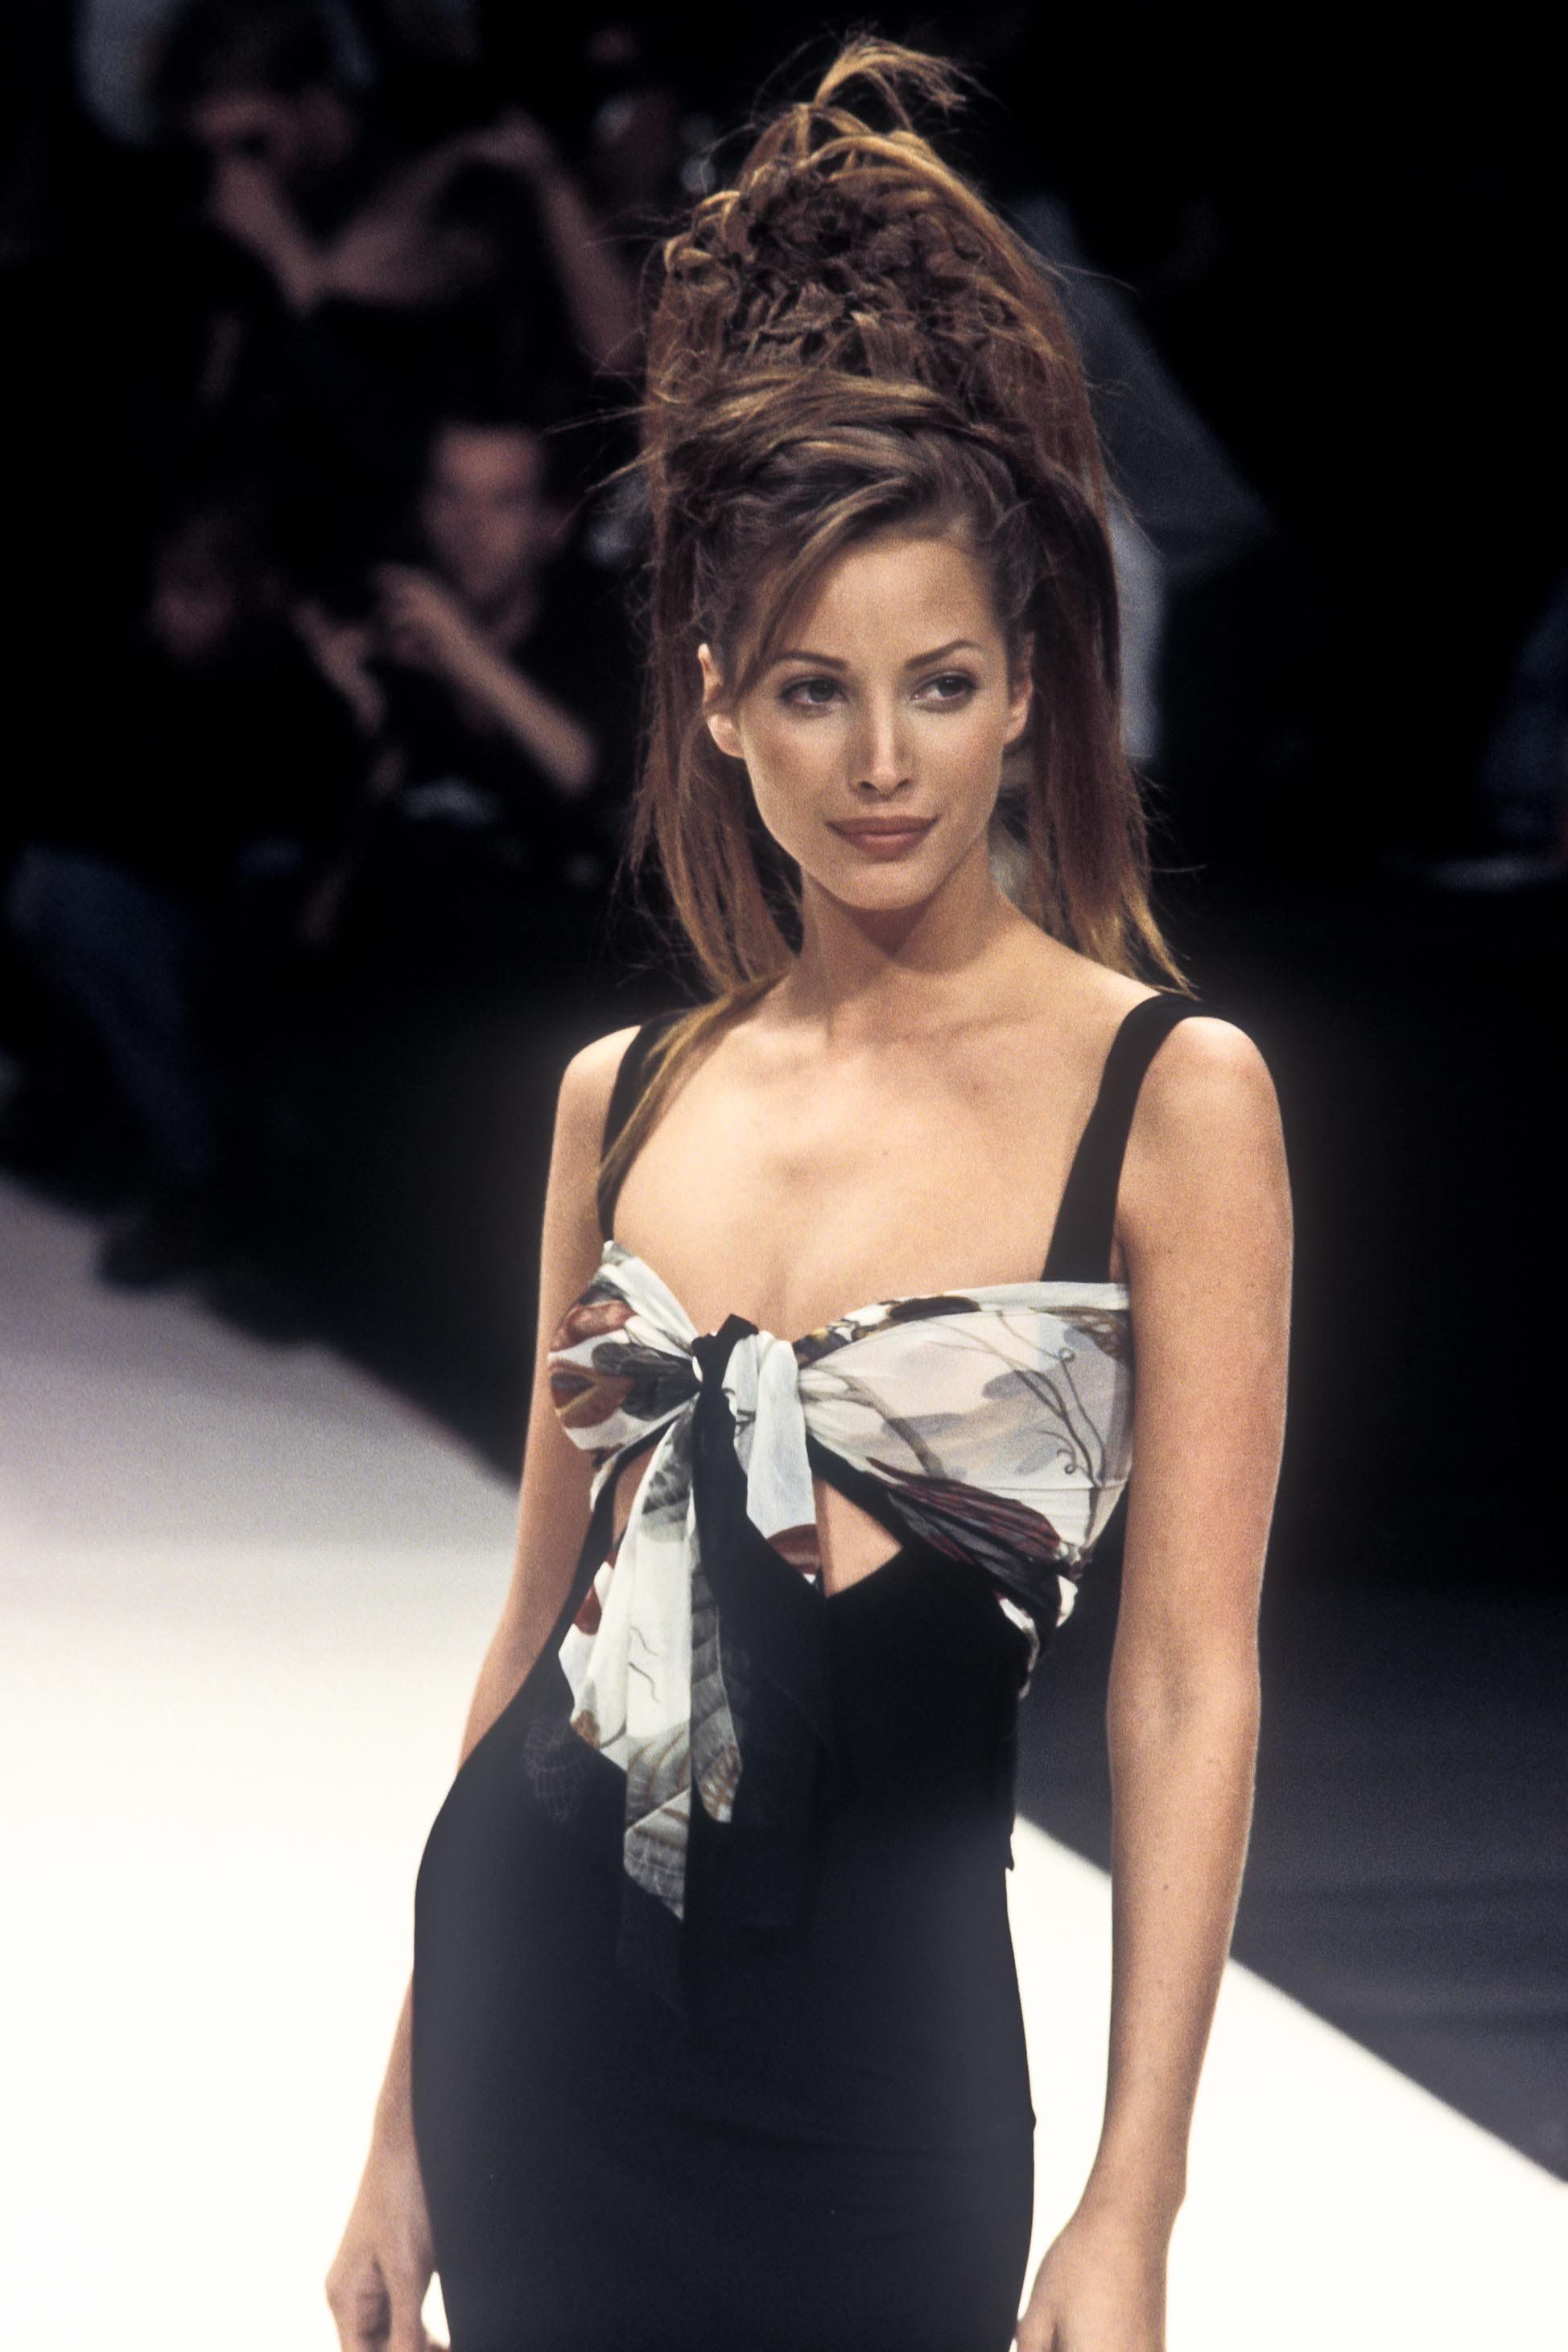 Pin by Lou on Christy Turlington in 2020 (With images